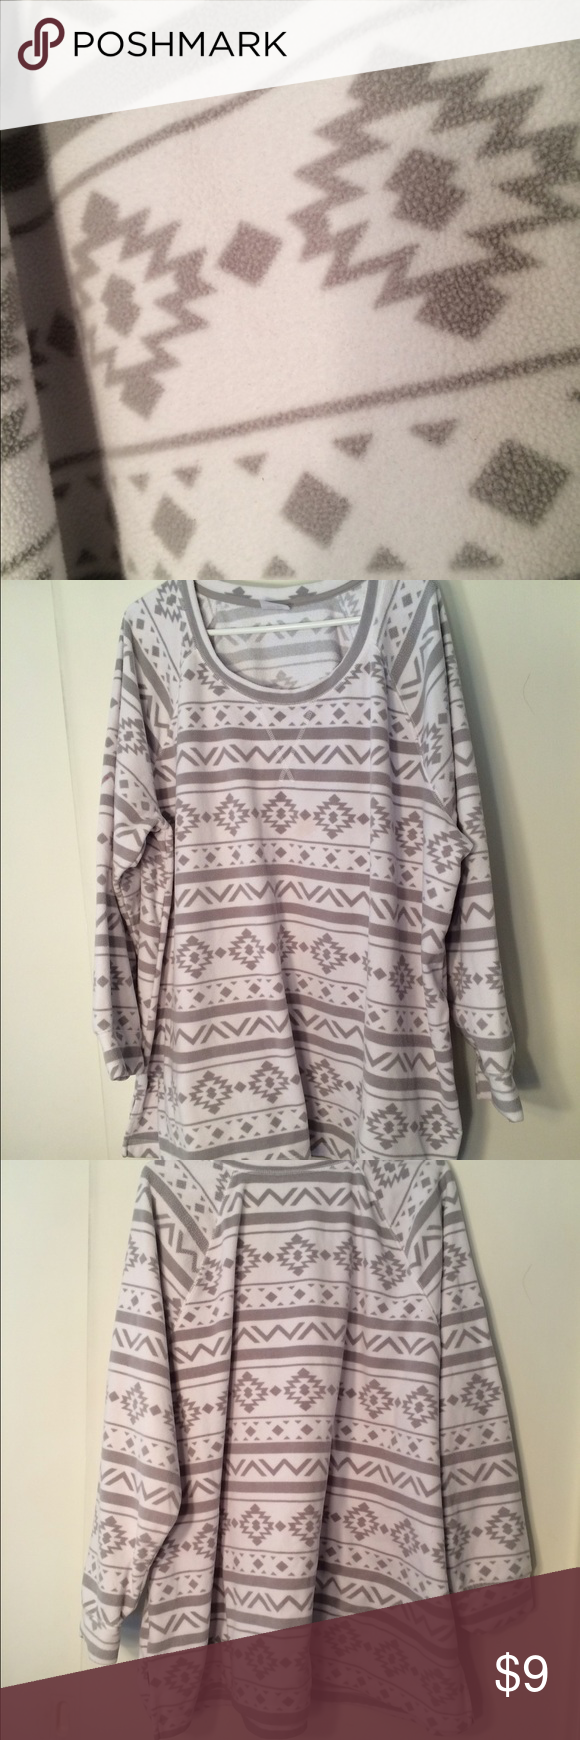 Plus size fleece top Excellent condition plus size fleece top and gray and white super soft and cozy Danskin Tops Sweatshirts & Hoodies